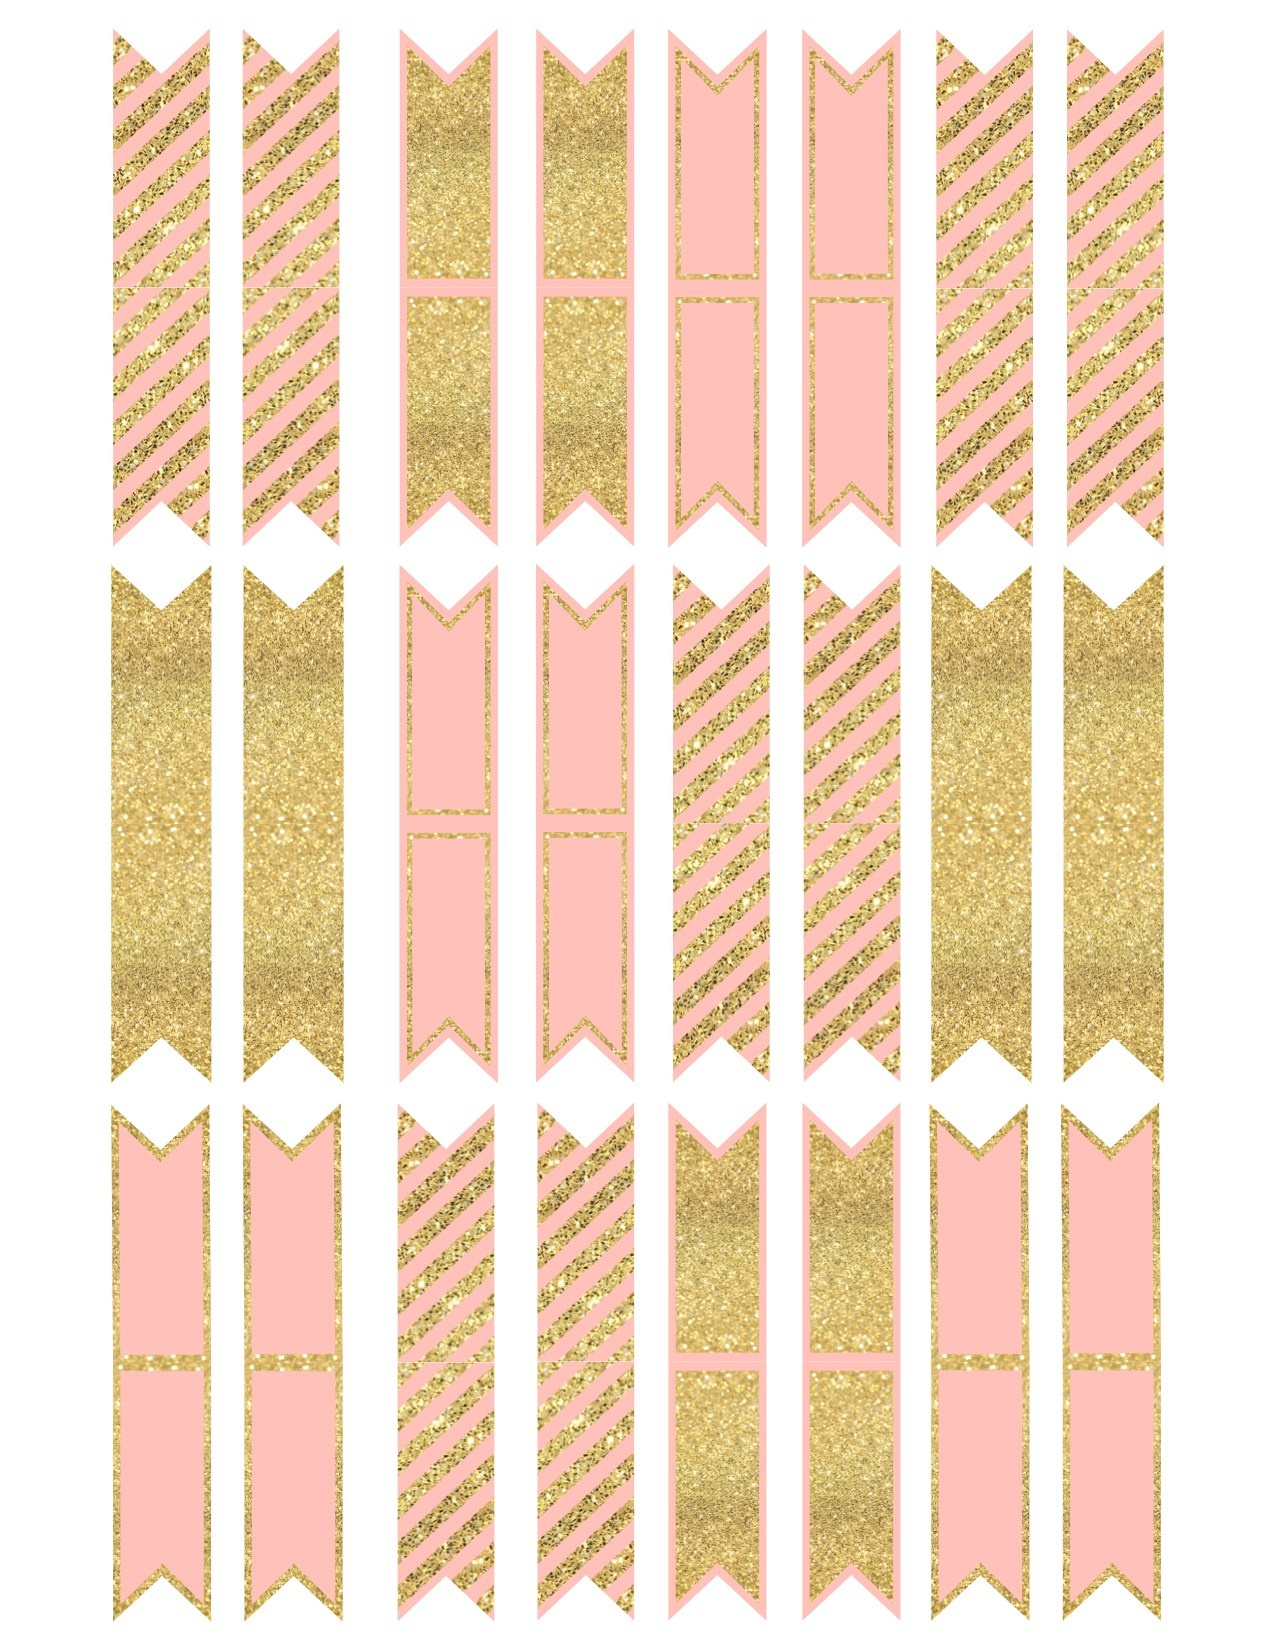 Pink And Gold Cupcake Topper Flags Or Bunting - Paper Trail Design - Baby Shower Bunting Free Printable